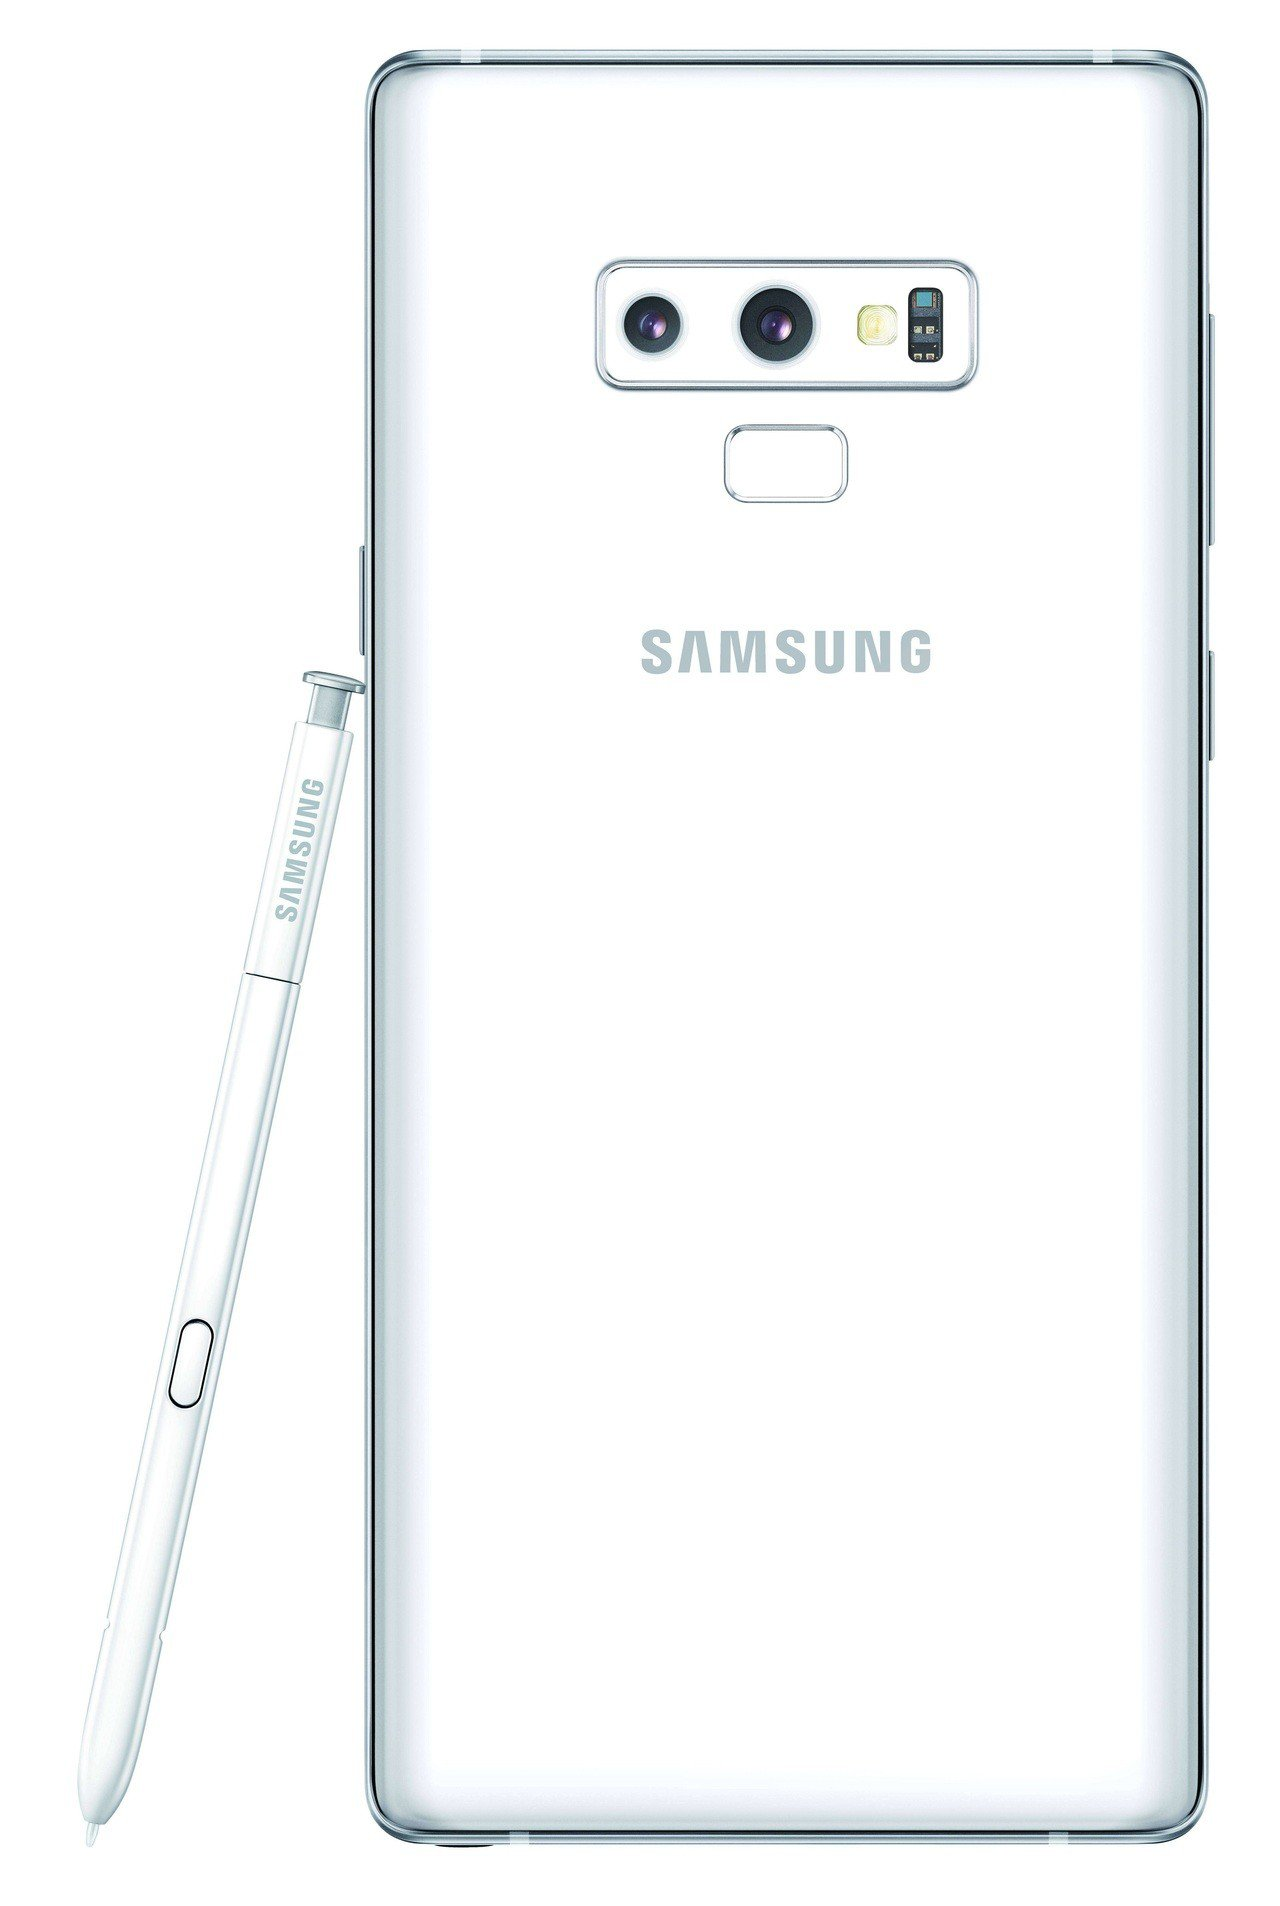 即日起至2月28日購買Samsung Galaxy Note9送無線閃充充電板。...